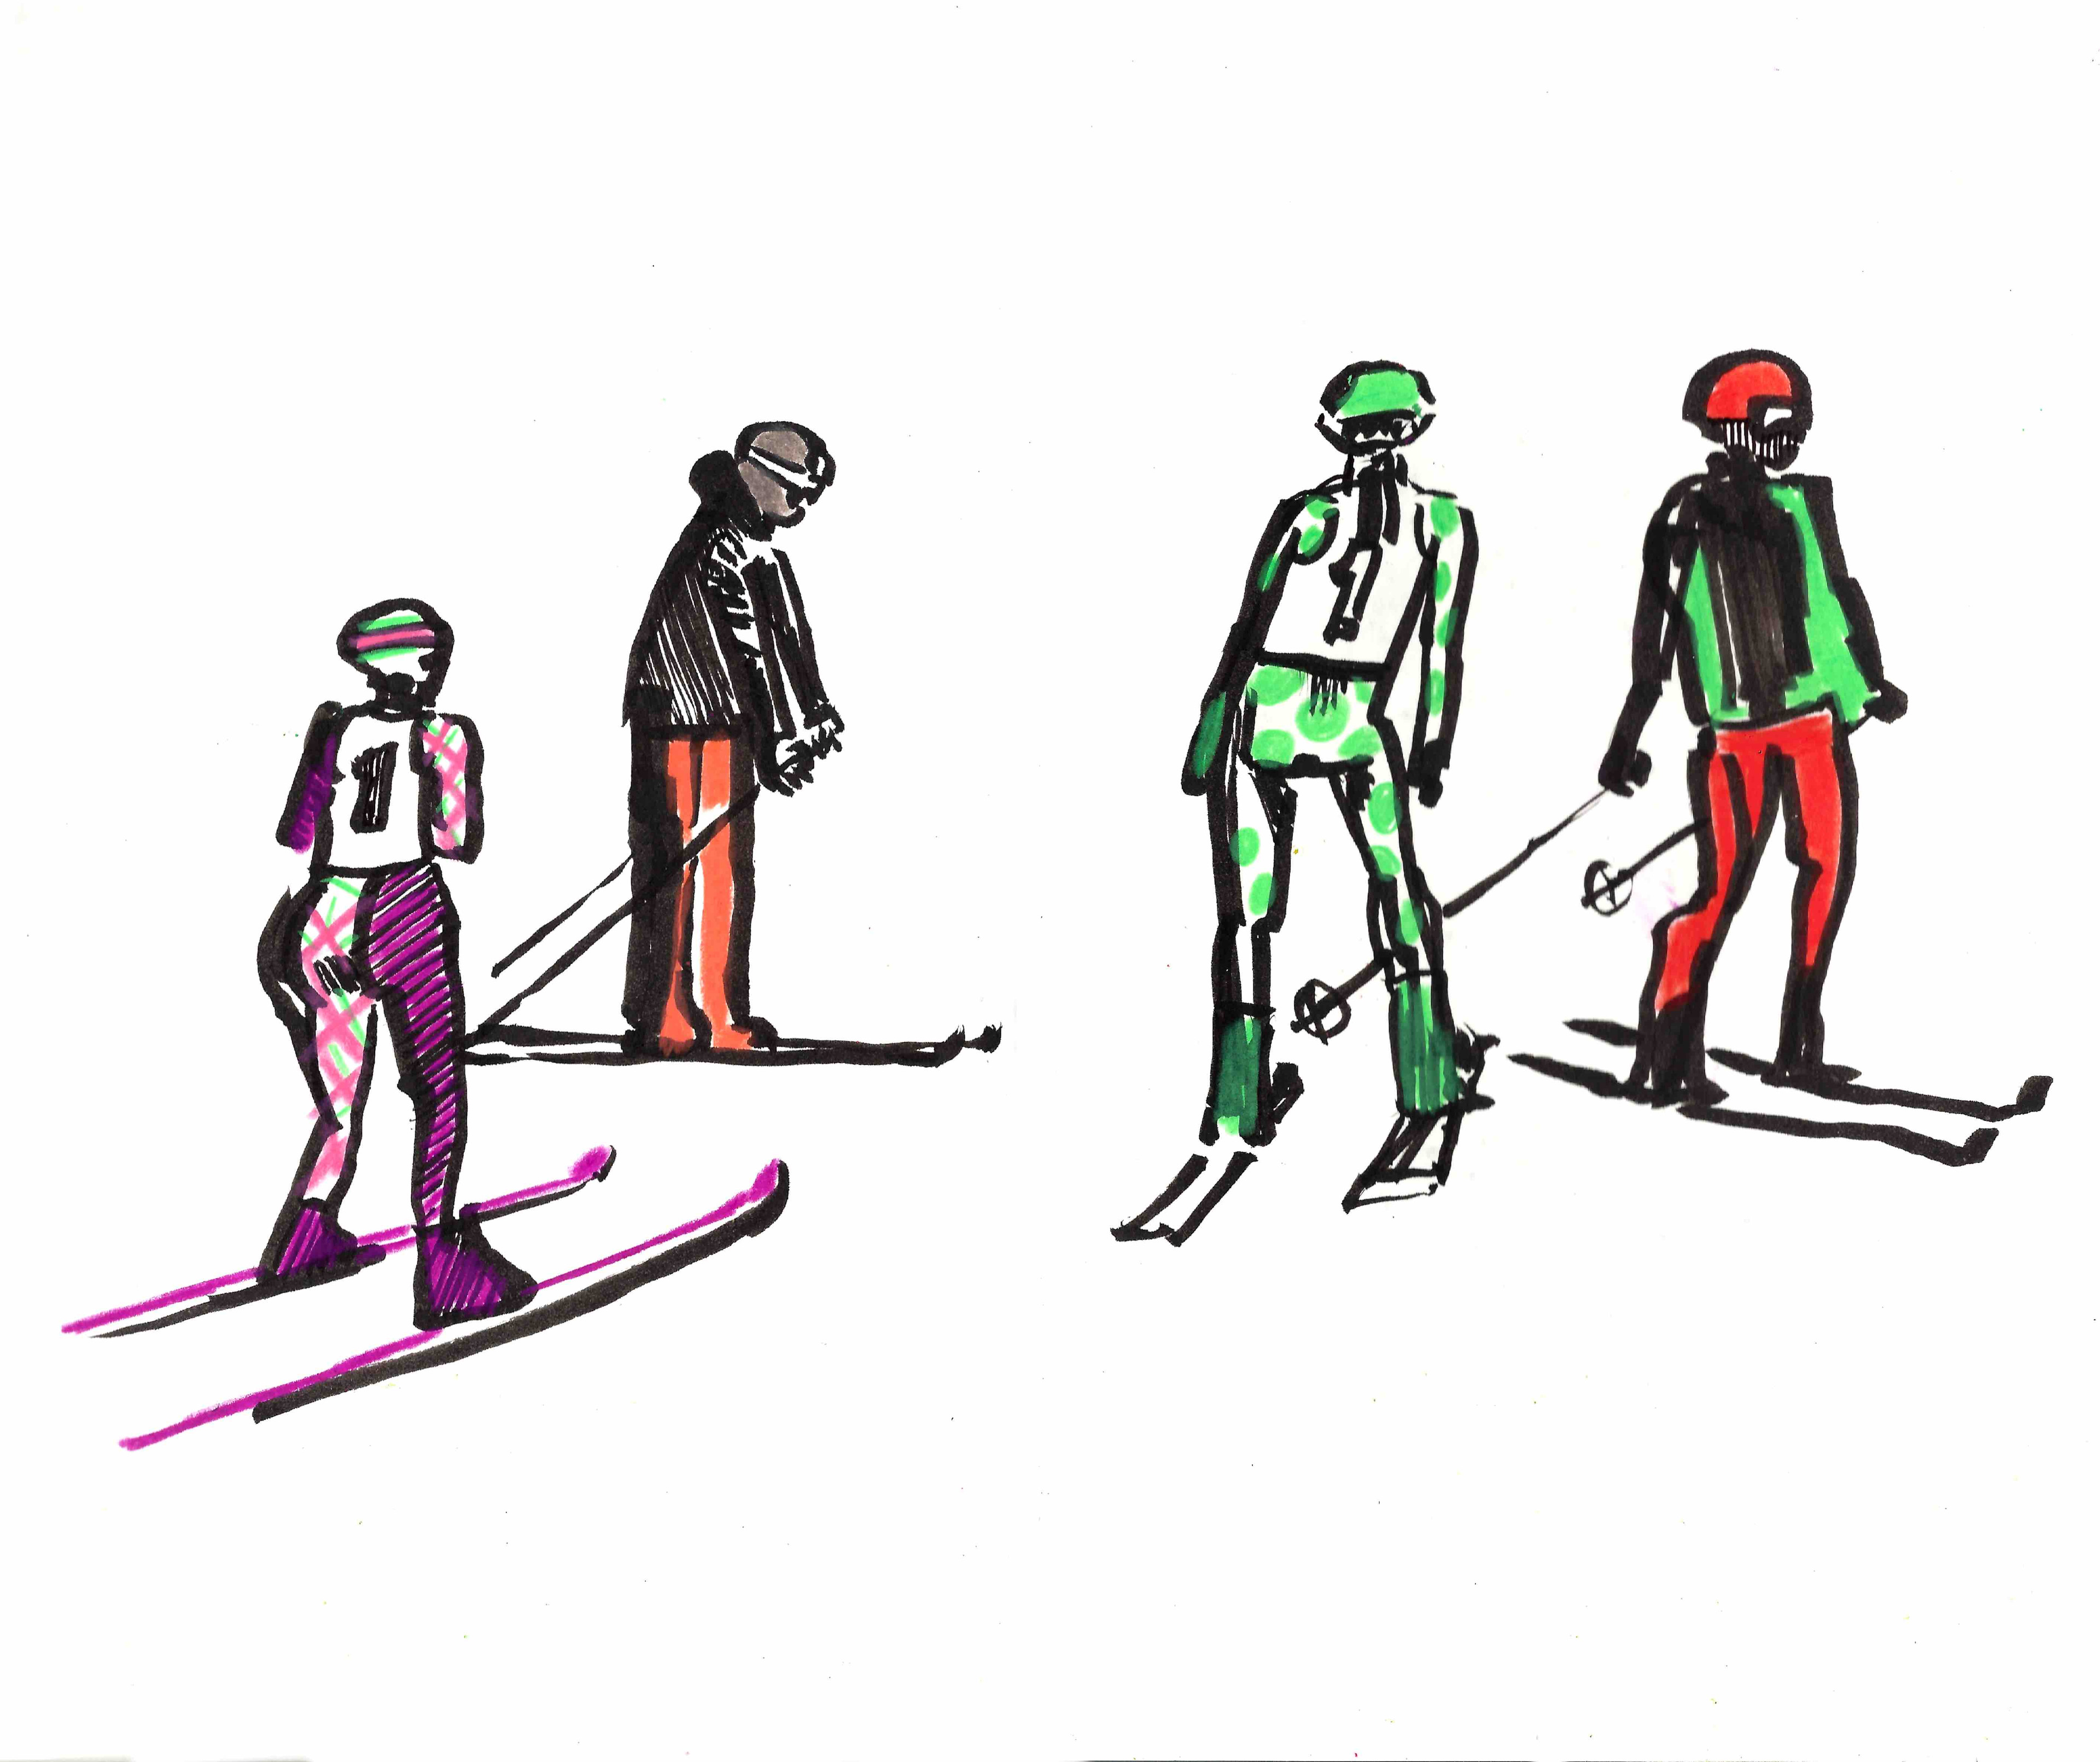 These Skiers were drawn on location. Go out and draw the world as you see it around you.